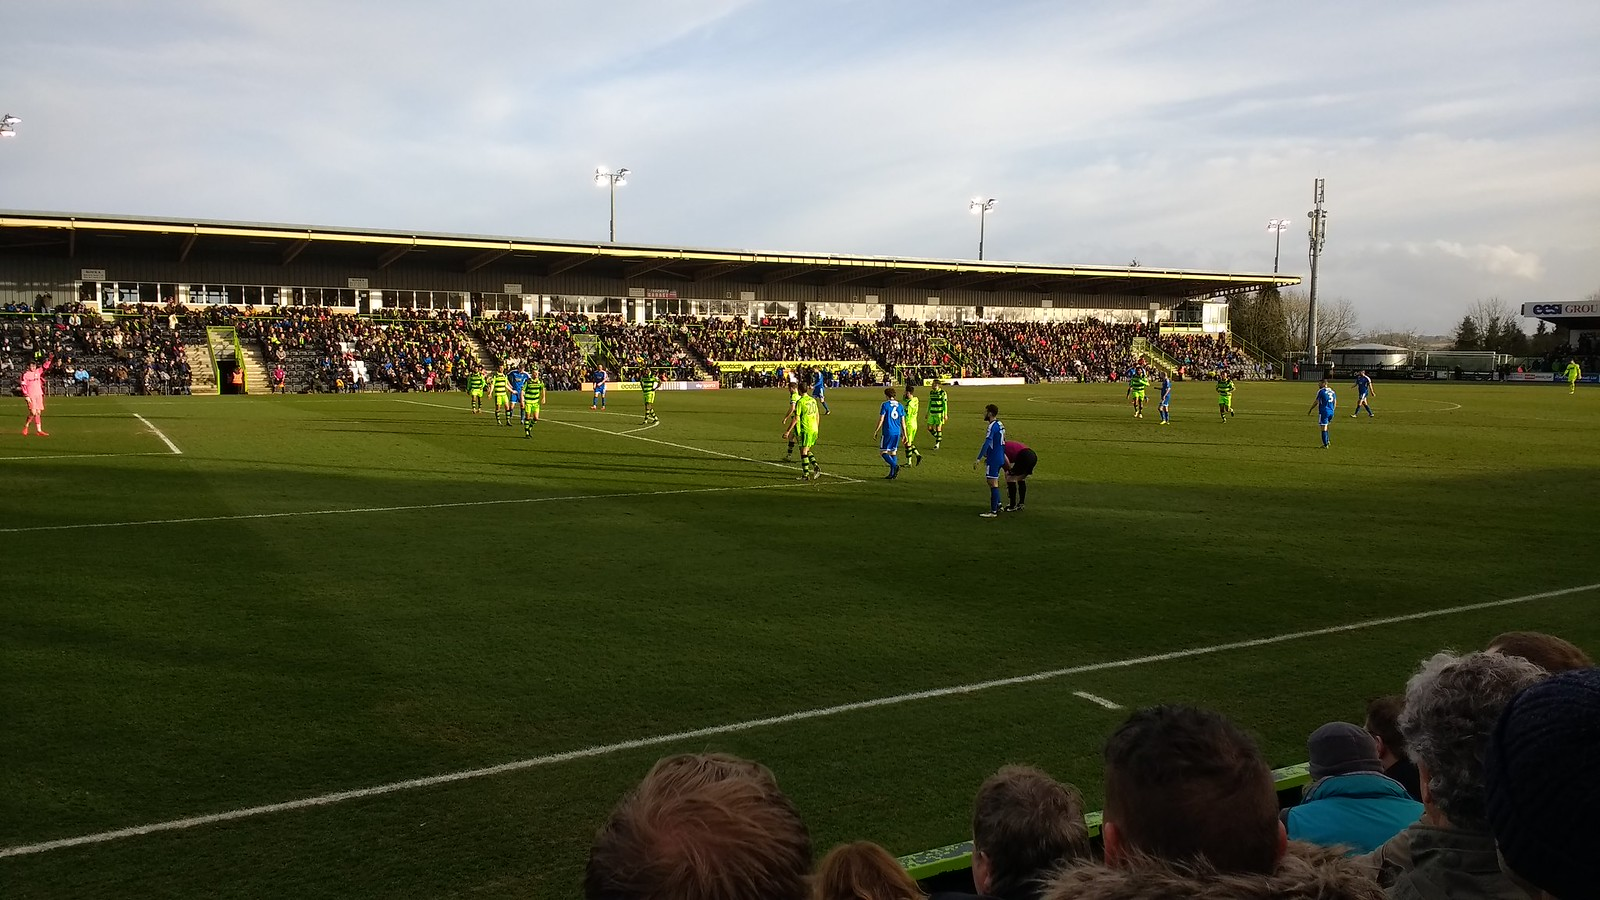 Forest Green Rovers - innocent New Lawn is the new name